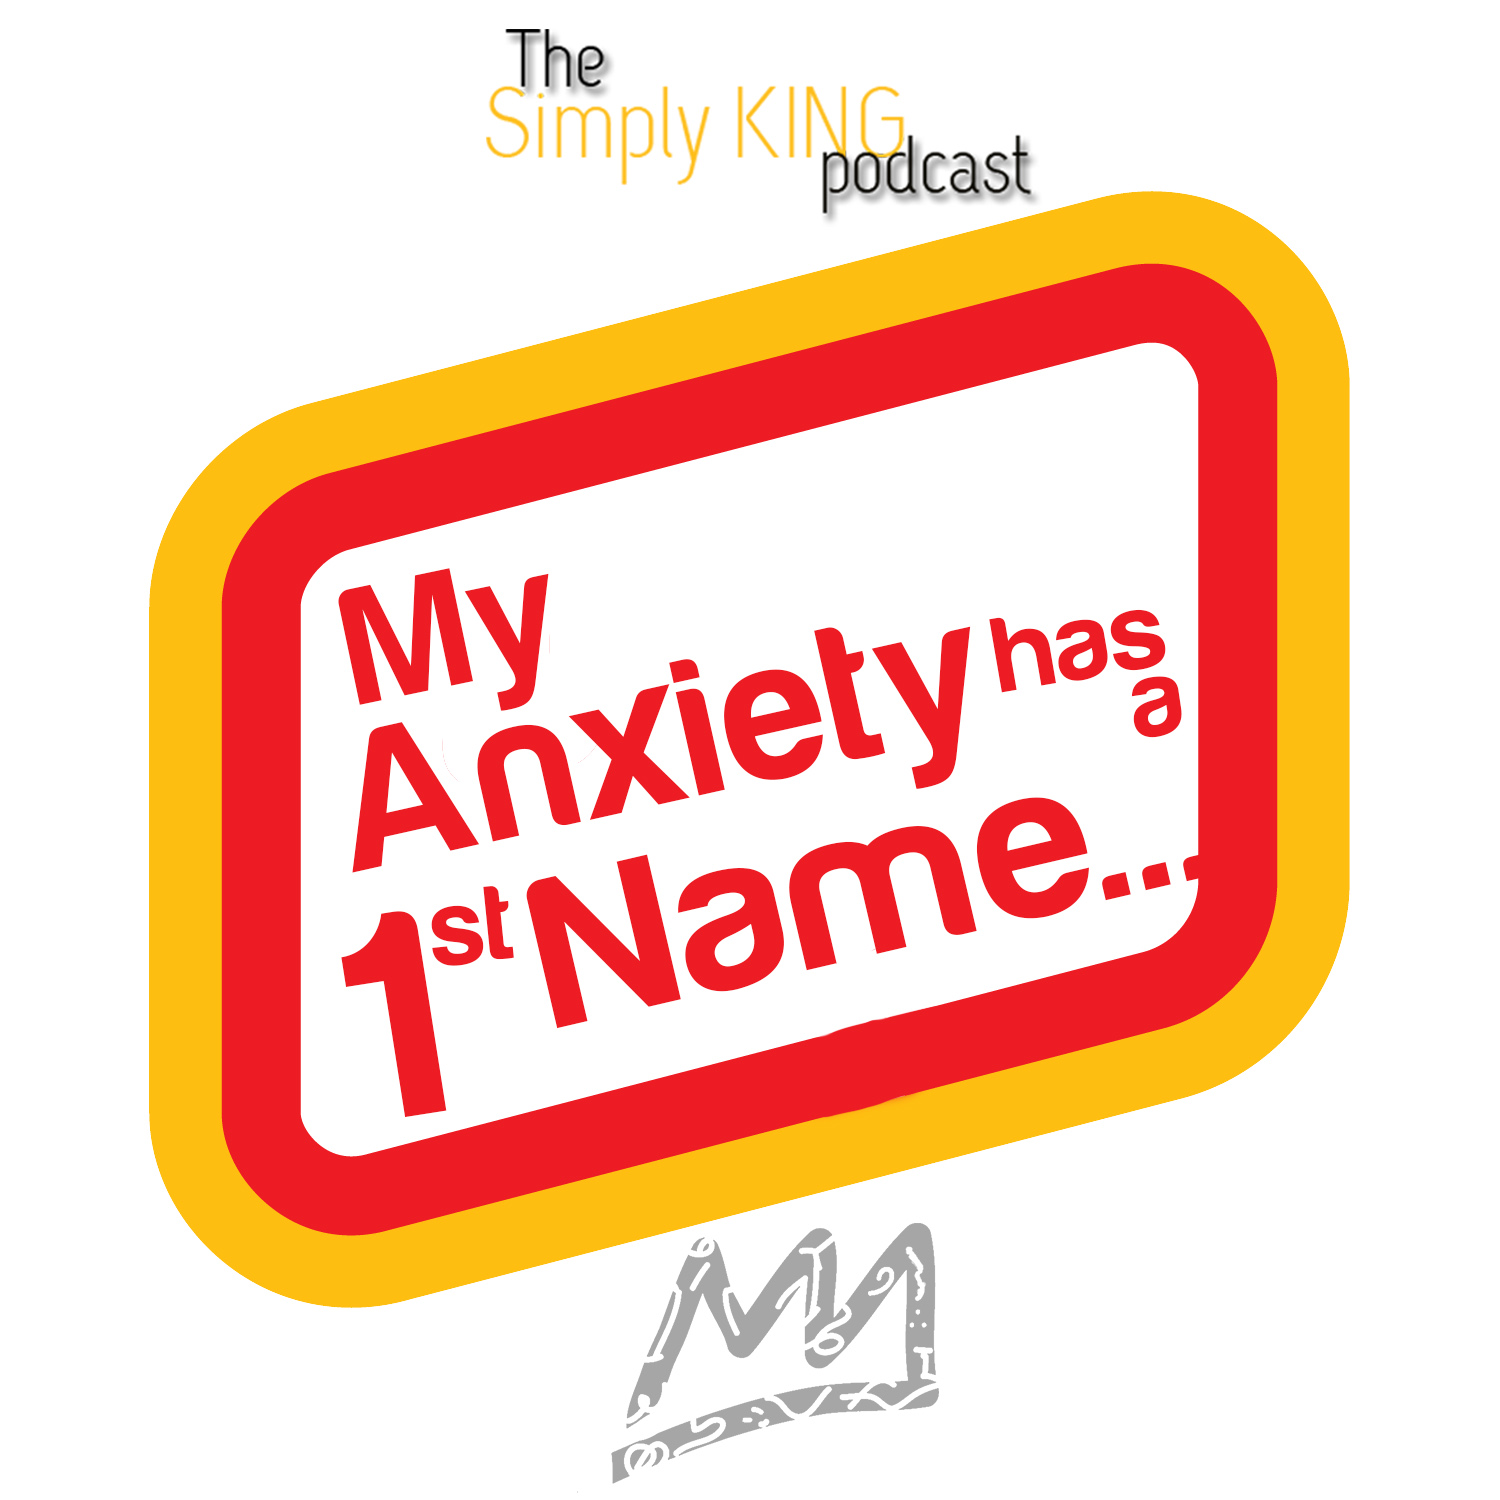 My Anxiety has a 1st Name…